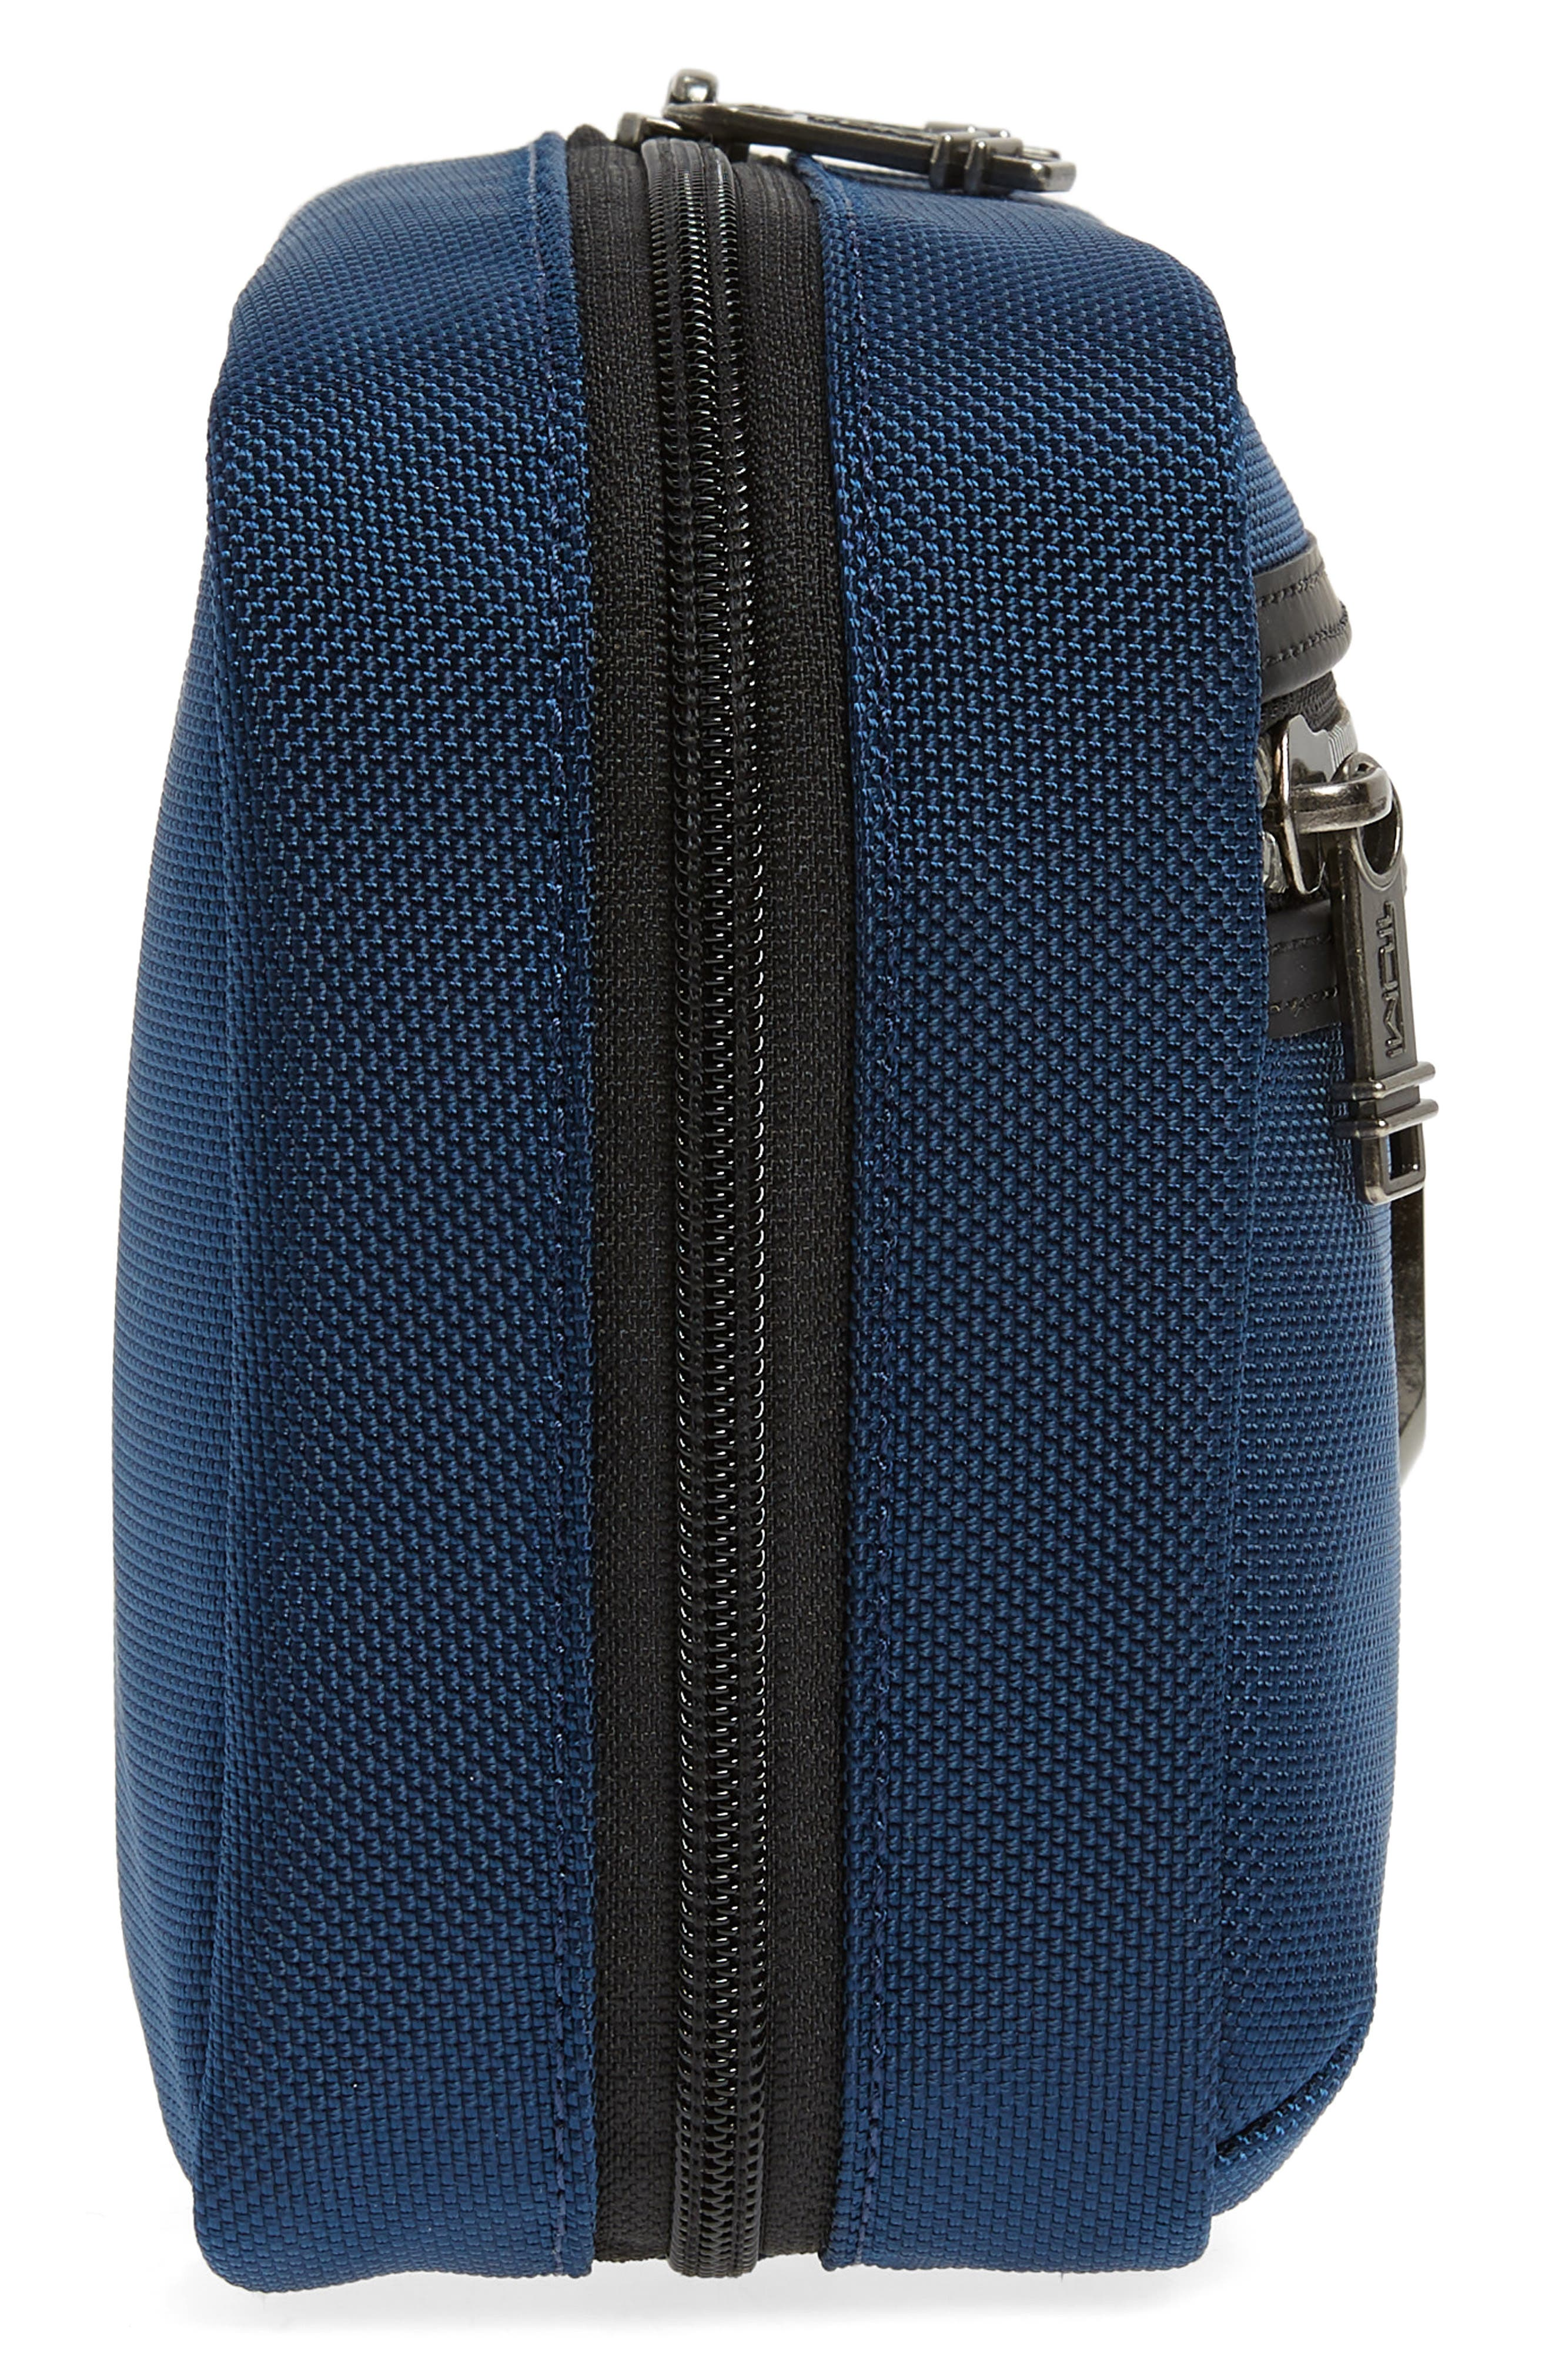 TUMI,                             Alpha Bravo - Reno Travel Kit,                             Alternate thumbnail 4, color,                             415